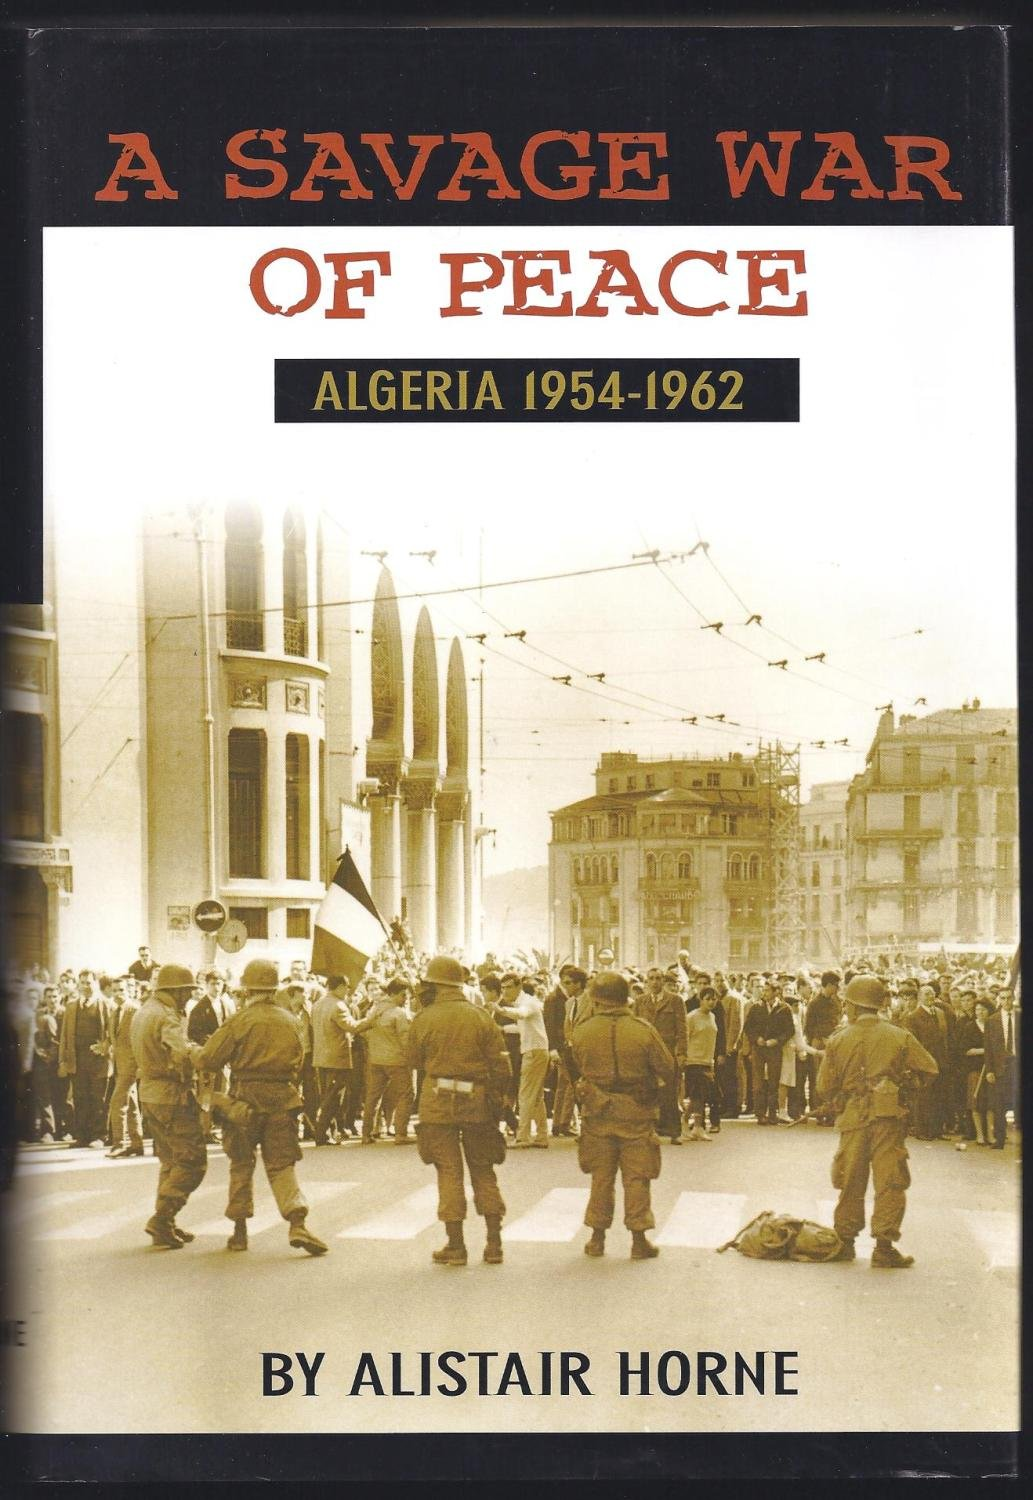 A SAVAGE WAR OF PEACE Algeria 1954-1962